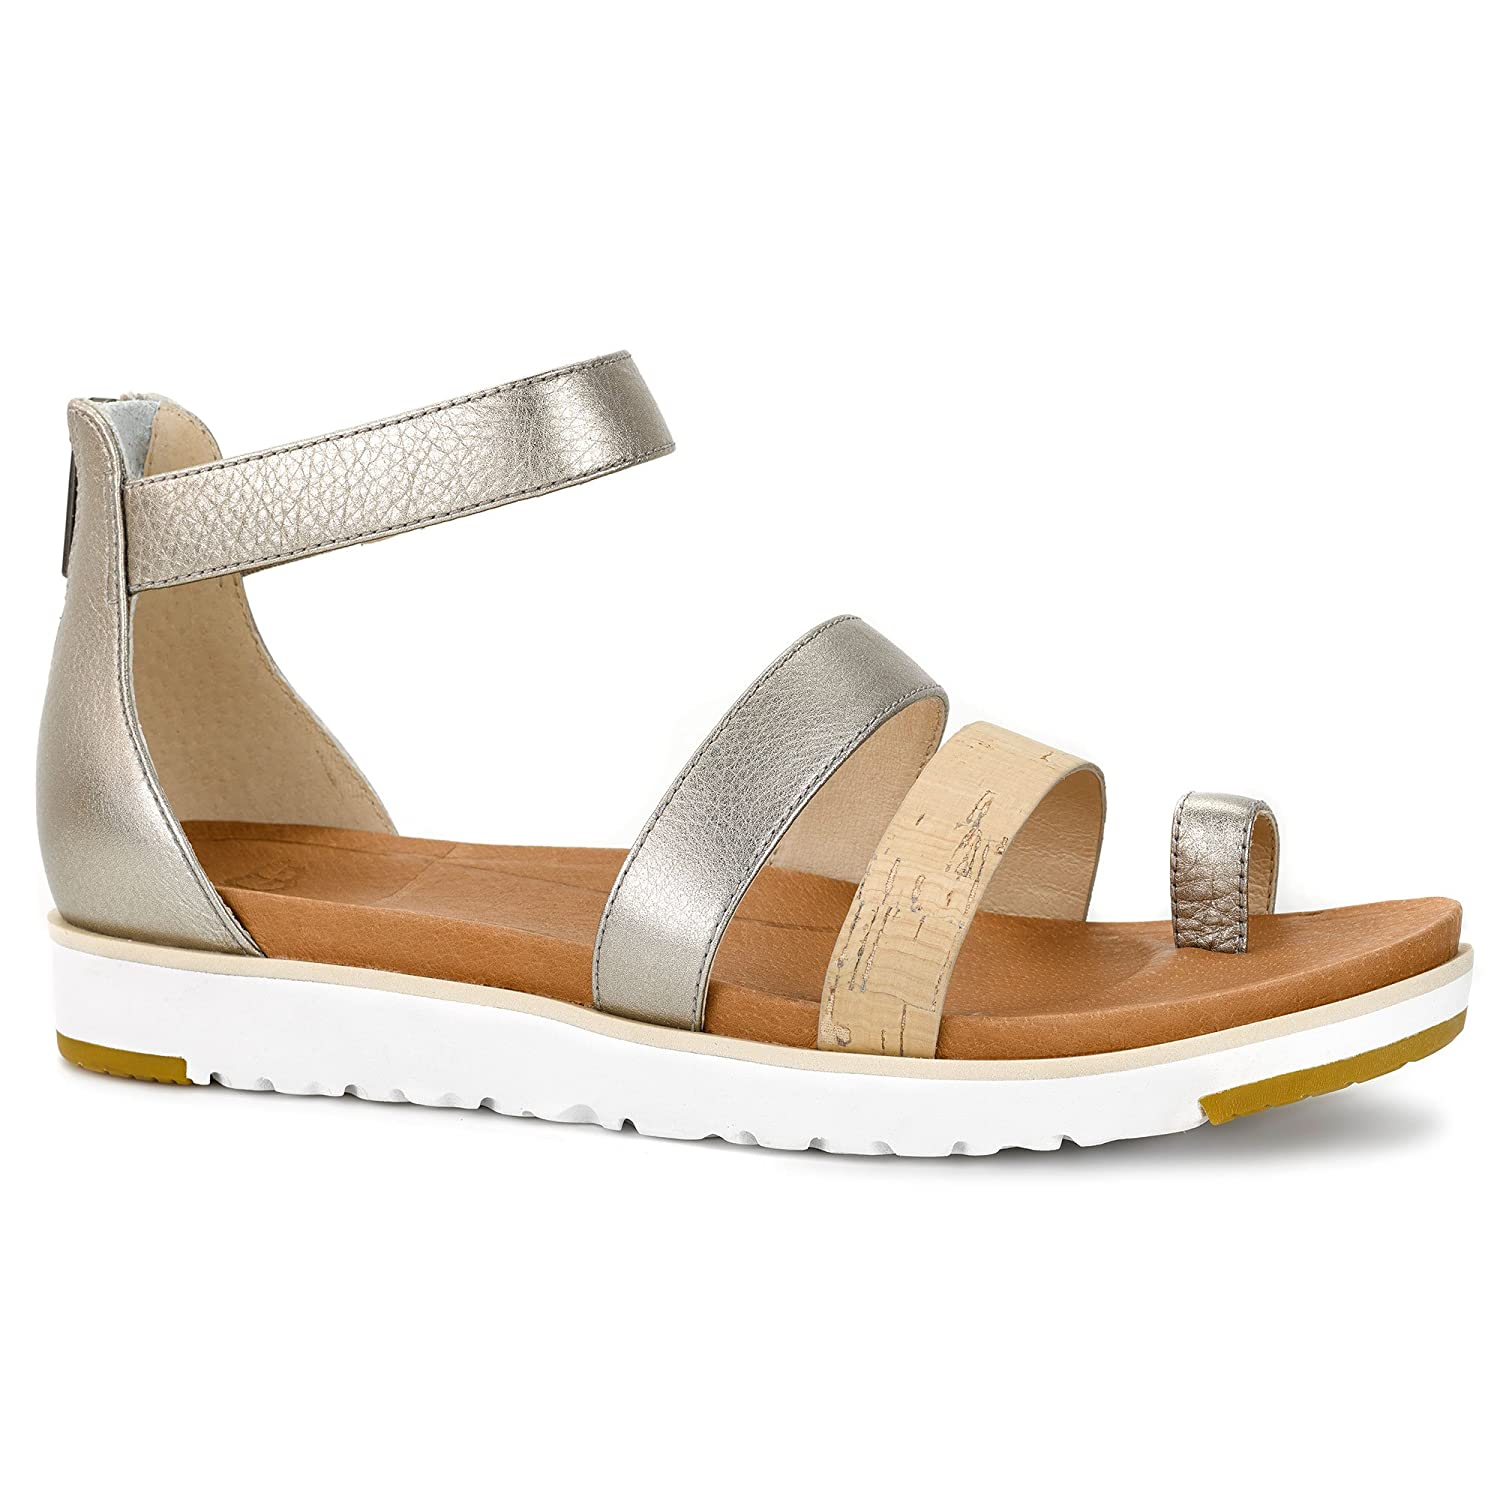 35f6c75d731 UGG Zina Sandals 2016 Grey/Gold Size: 6.5: Amazon.co.uk: Shoes & Bags